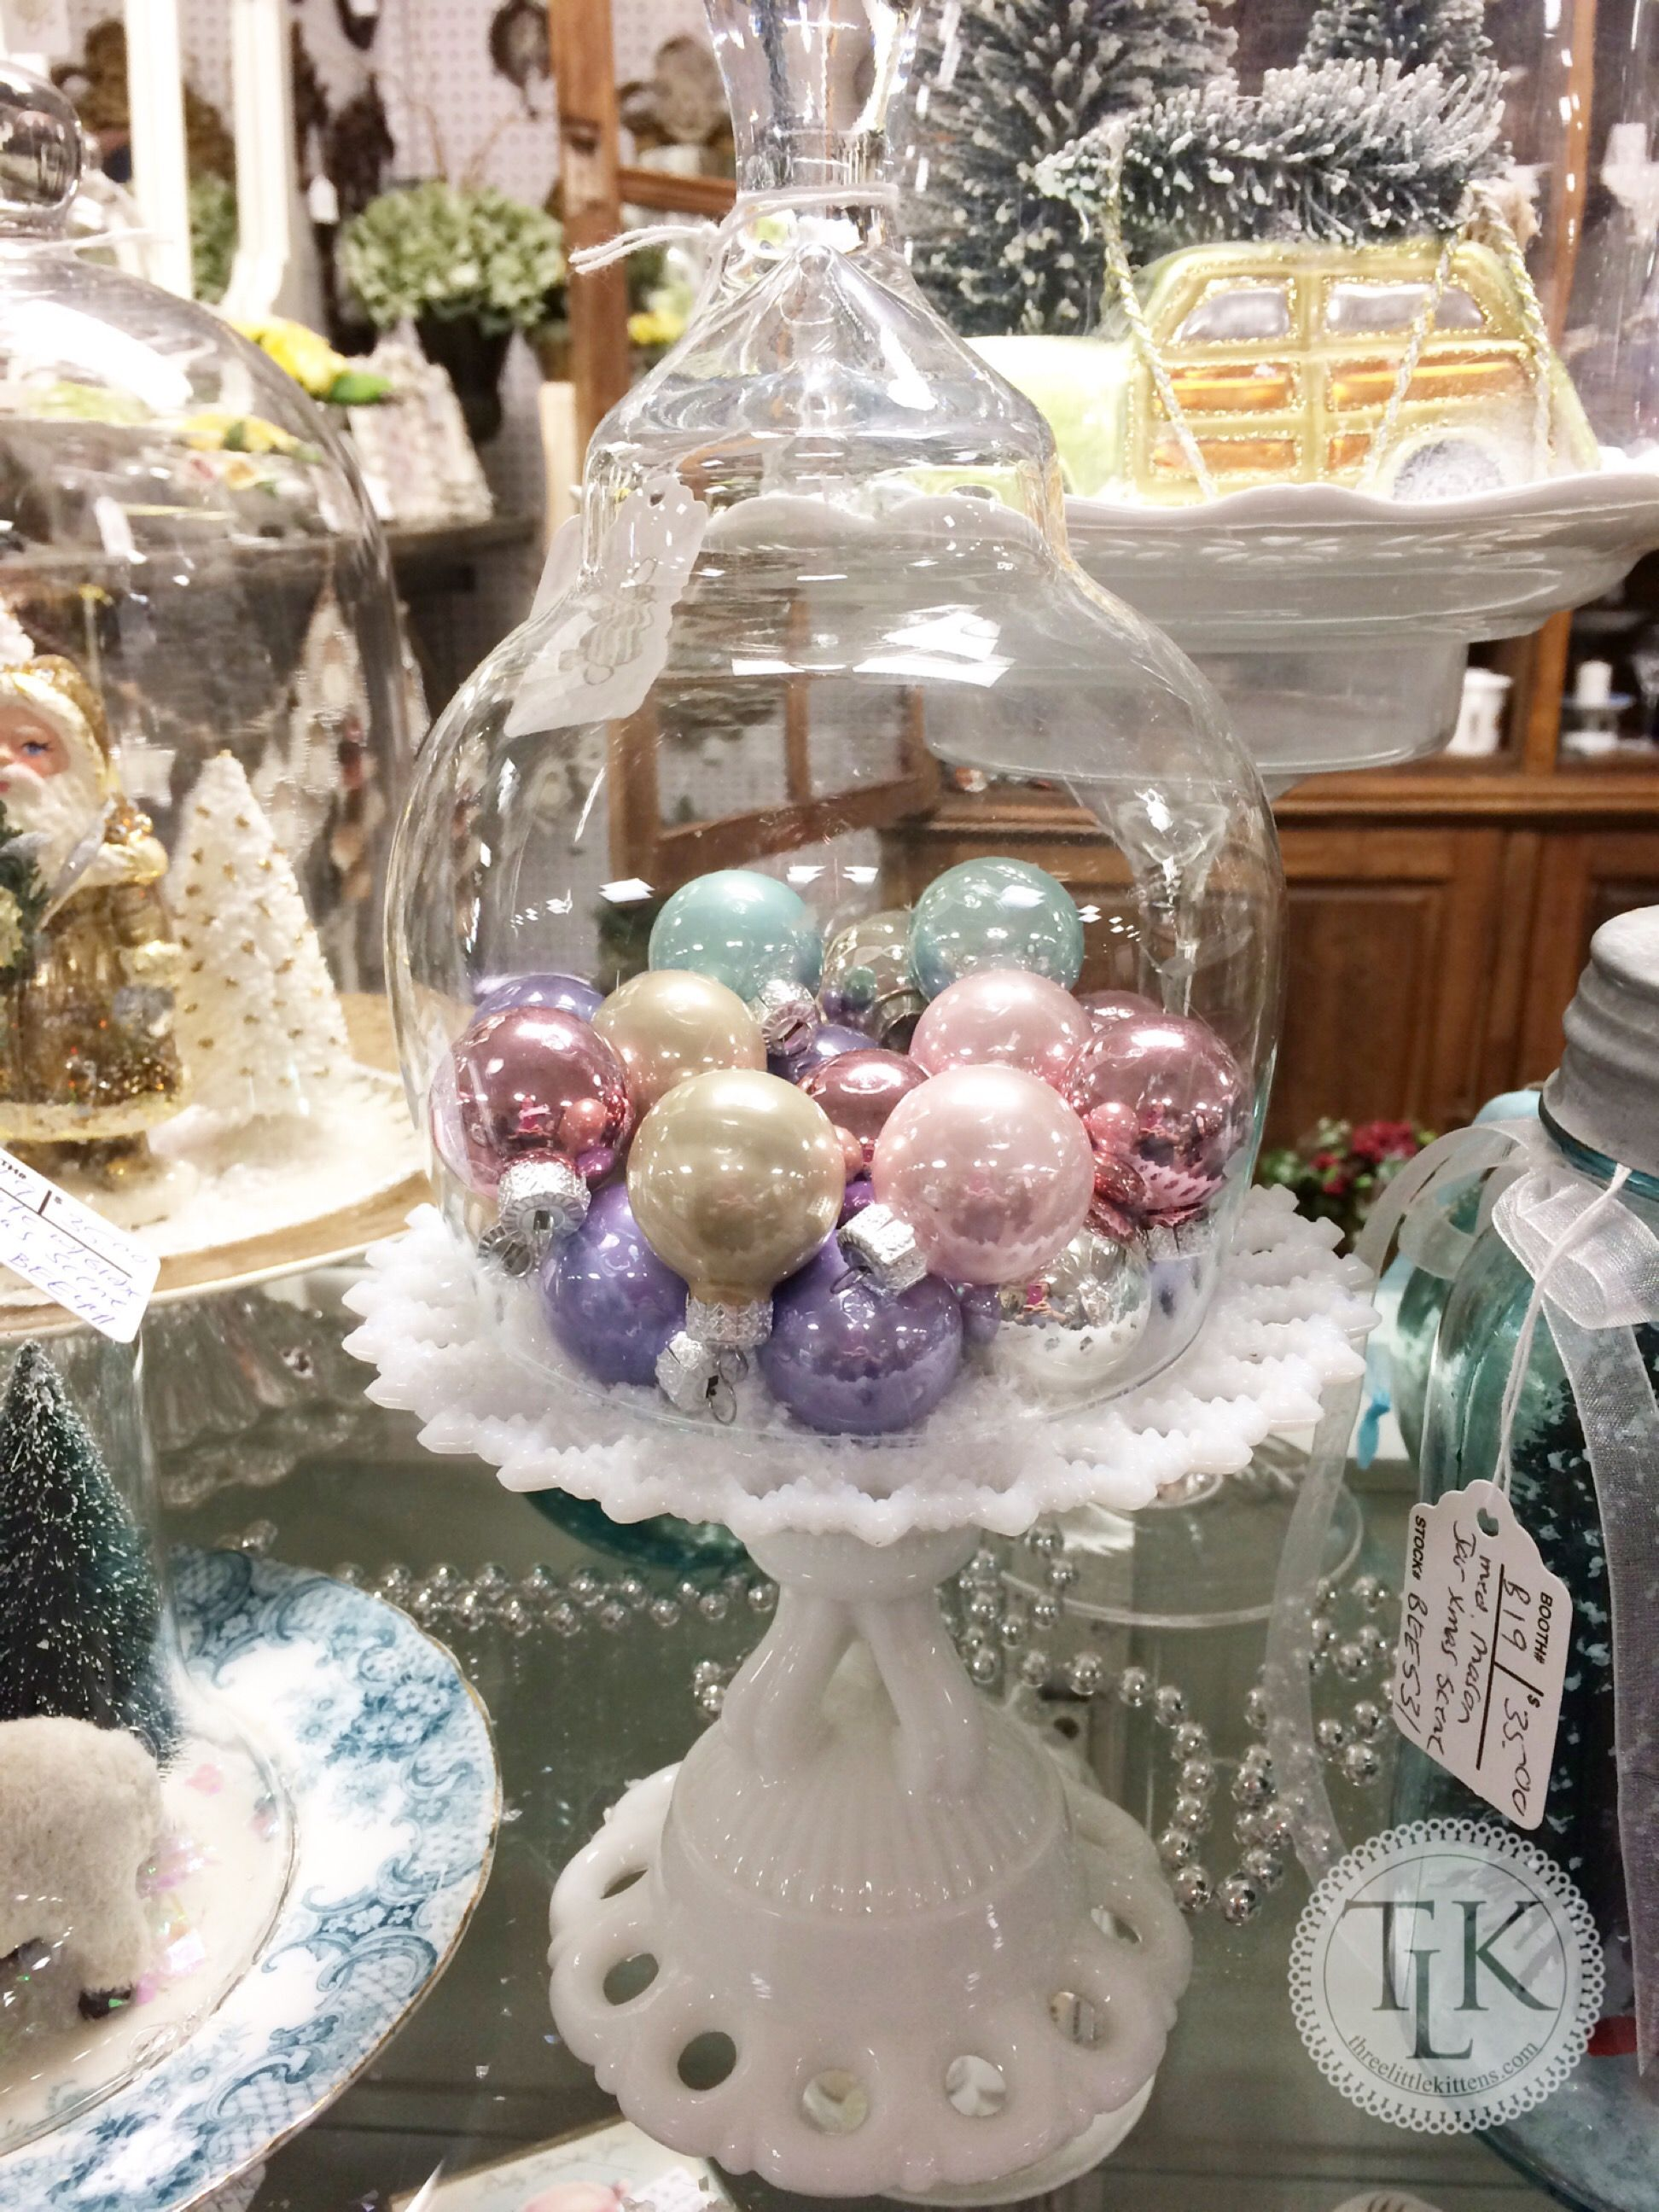 cake plate of pastel ornaments under a cloche - Pastel Christmas Decorations